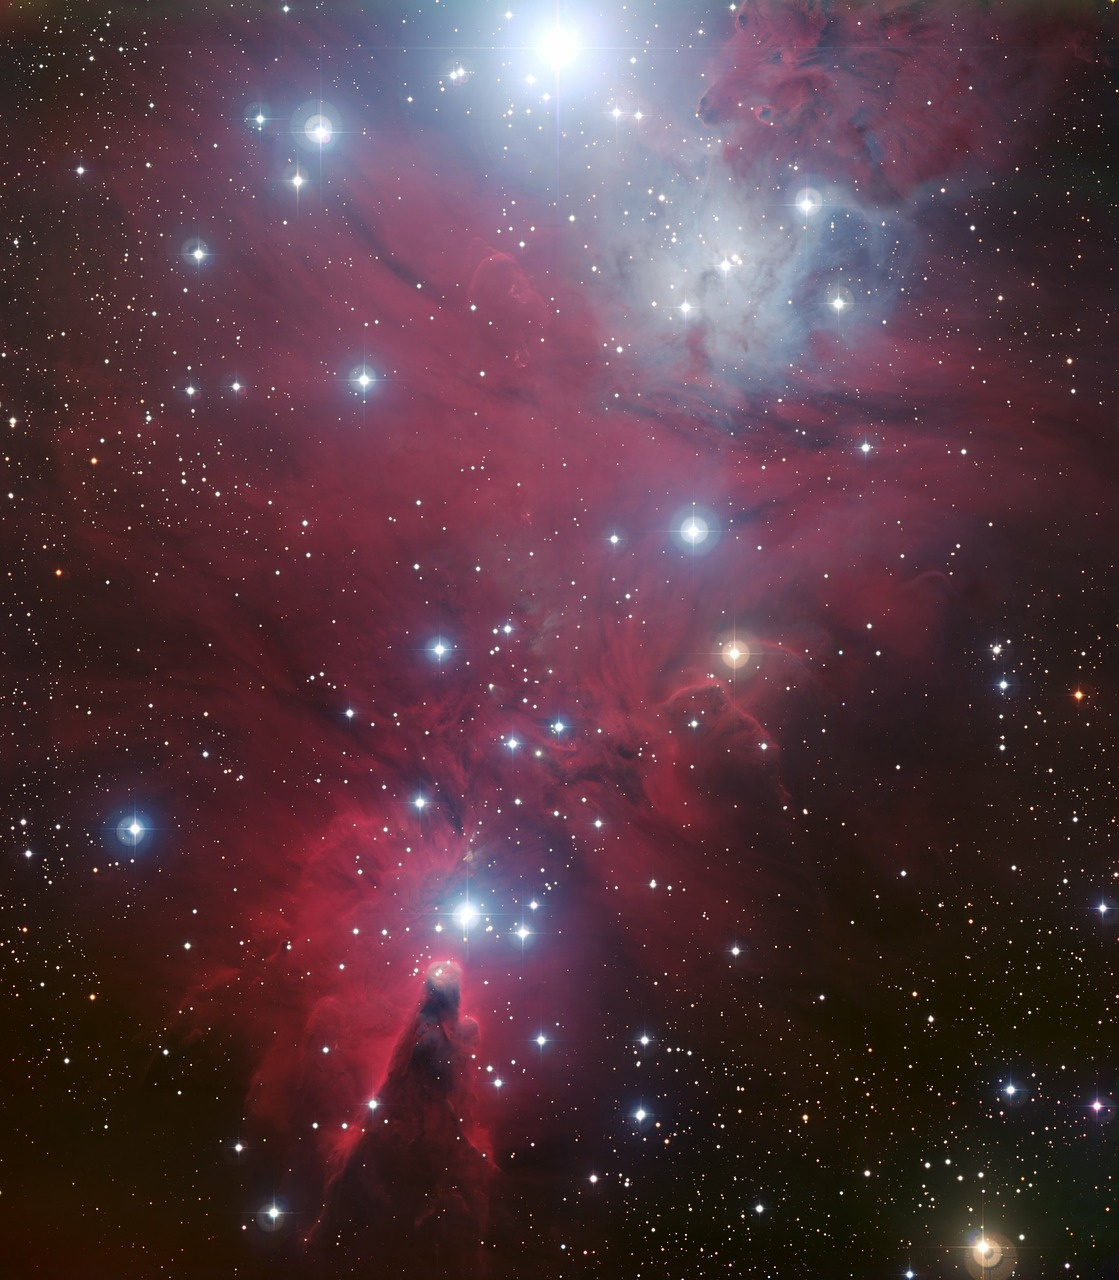 ngc 2264 dark nebula cone nebula free photo